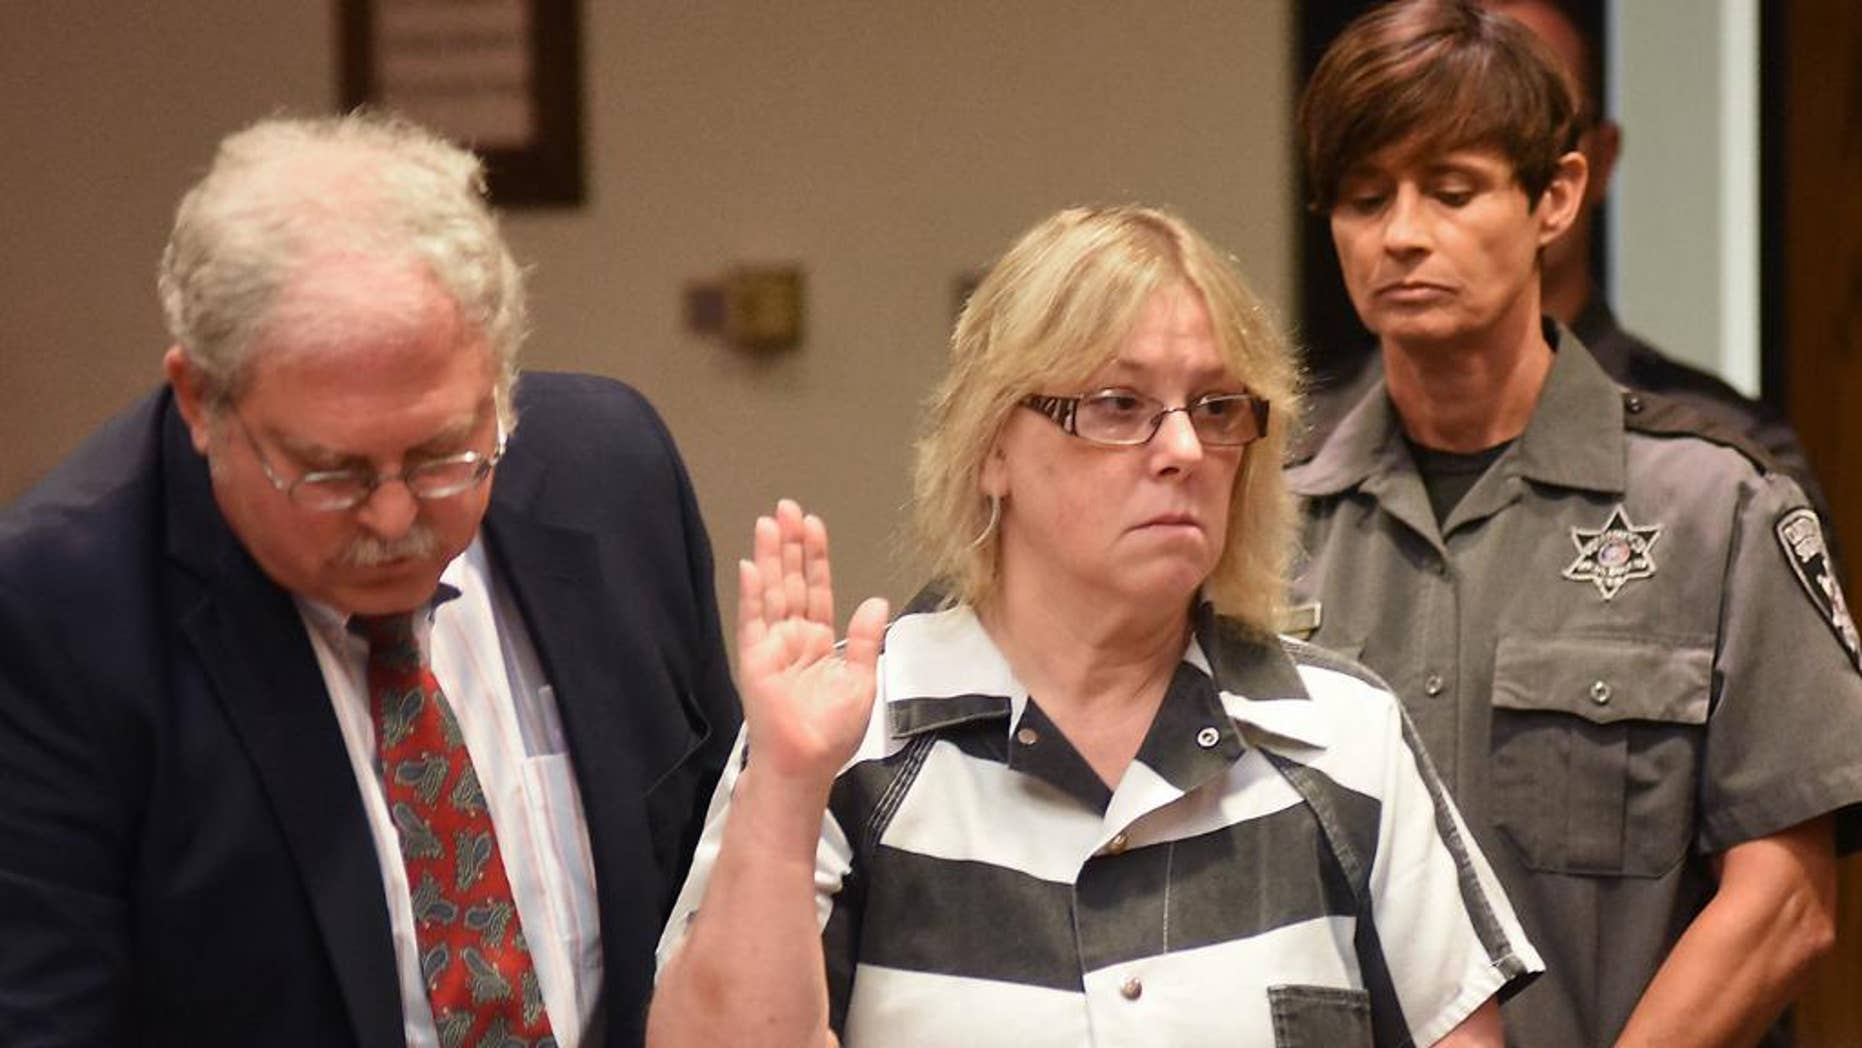 """FILE - In this July 28, 2015 file photo, Joyce Mitchell raises her hand during a court appearance in Plattsburgh, N.Y.  Mitchell, the former New York prison employee who helped two killers escape from a maximum-security prison in June, said in an interview that aired Monday, Sept. 14, on NBC's """"Today"""" show that she was depressed at the time and the inmates took advantage of what she called her """"weakness."""" (Rob Fountain/The Press-Republican via AP, Pool, File)"""